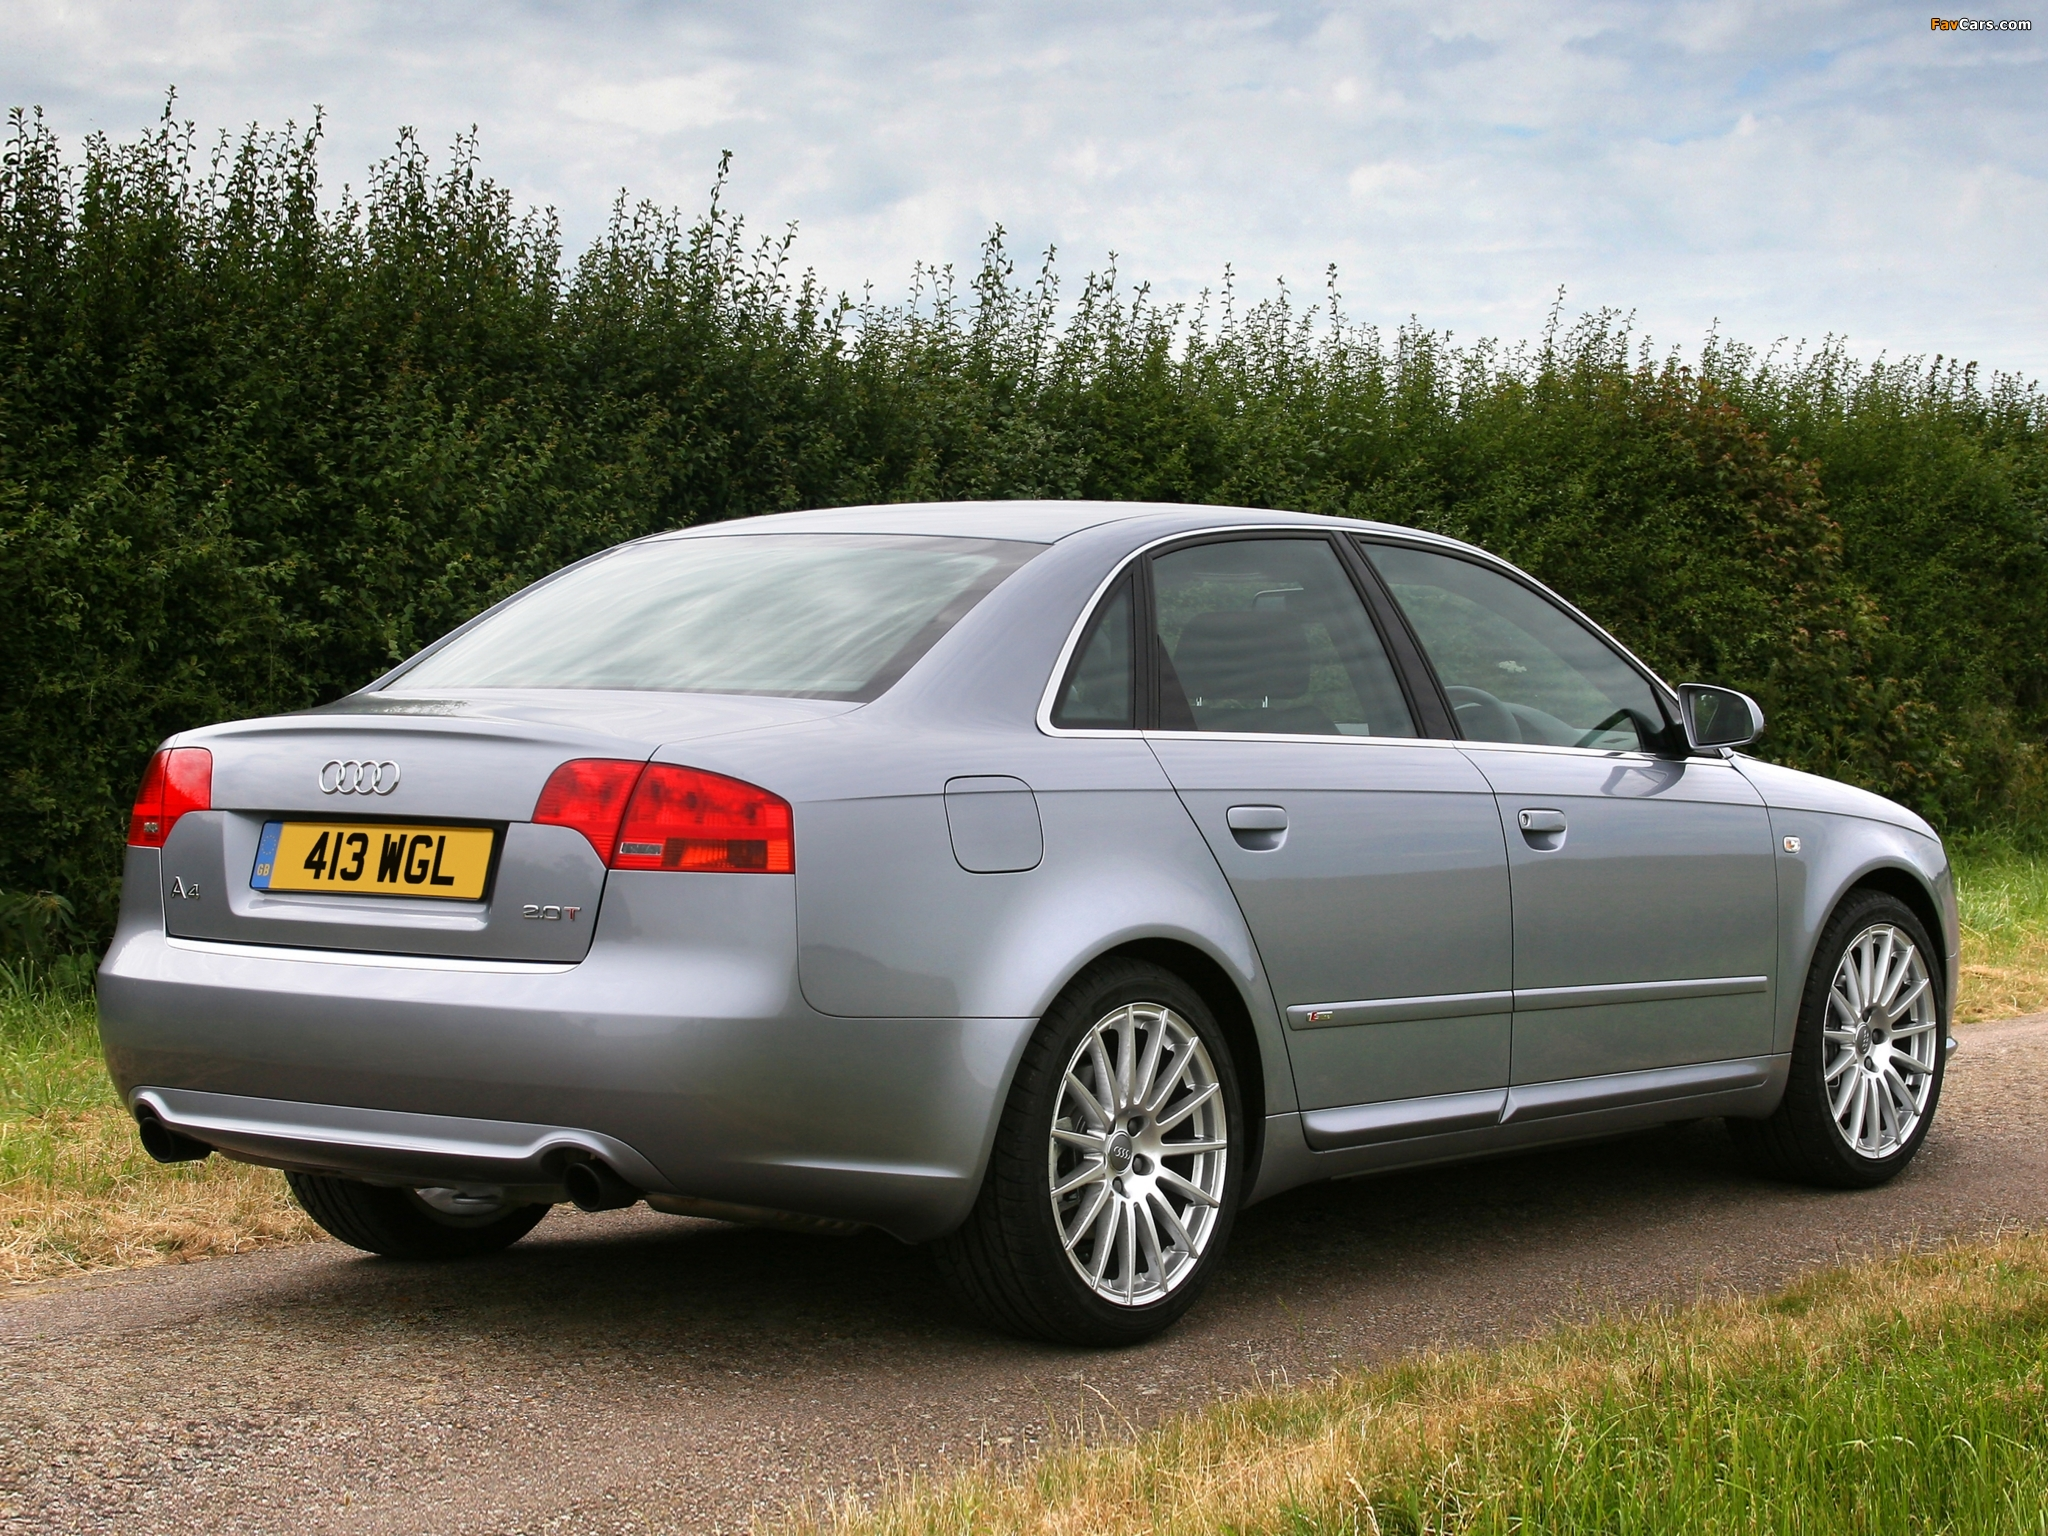 audi a4 2 0t s line sedan uk spec b7 8e 2004 2007 images. Black Bedroom Furniture Sets. Home Design Ideas